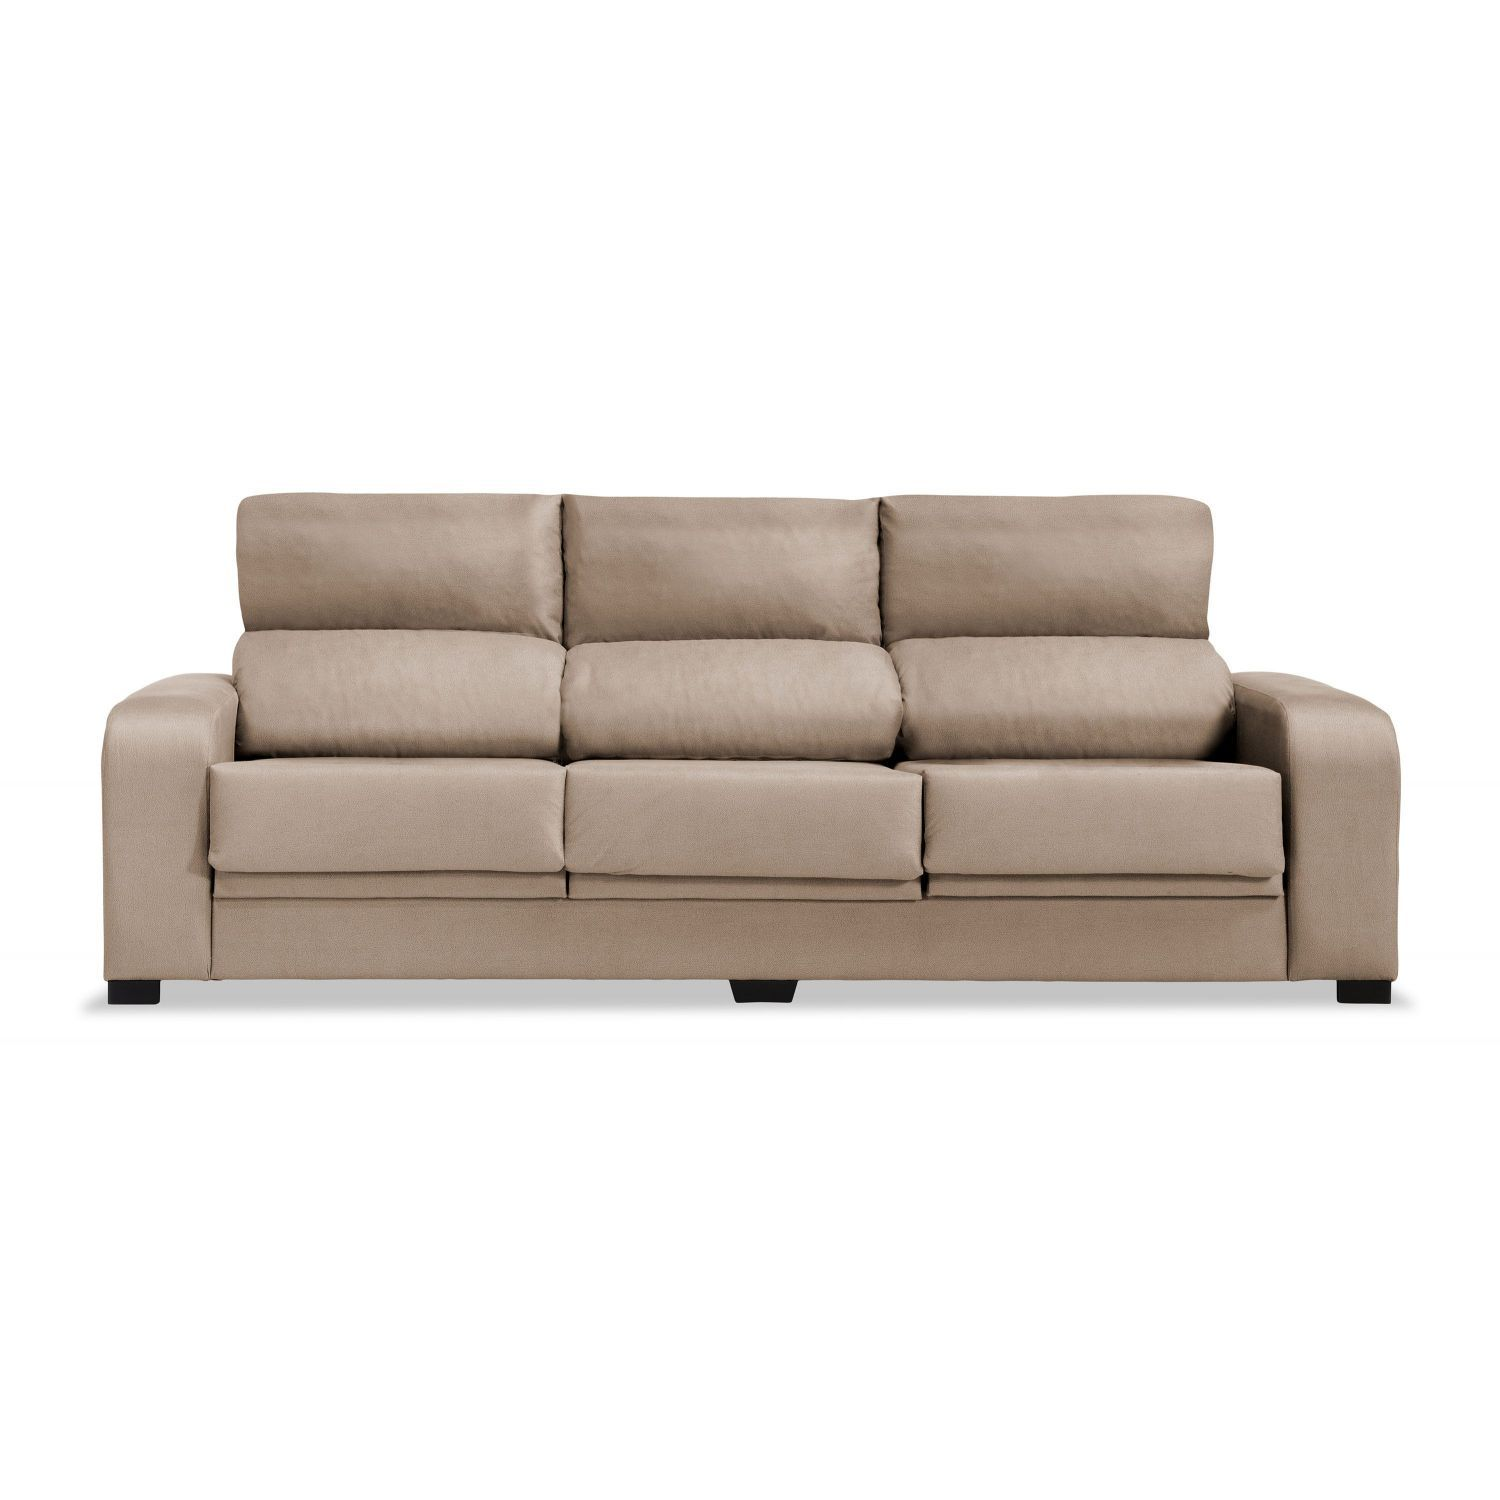 sofa clearance london cloth manufacturing companies in india sofá 3 plazas reclinable extensible desenfundable